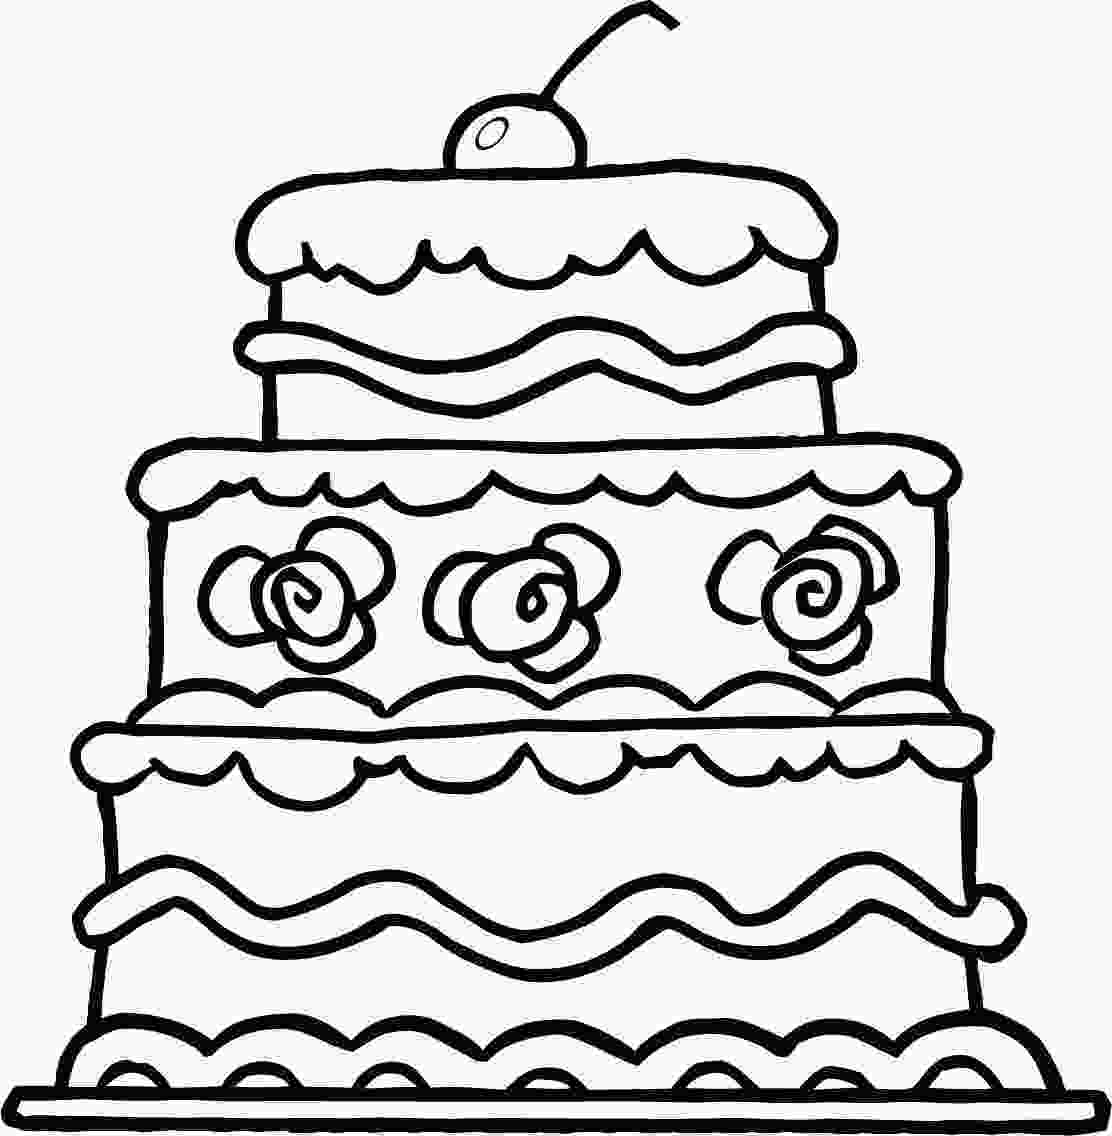 picture of cake to color cake coloring pages to download and print for free